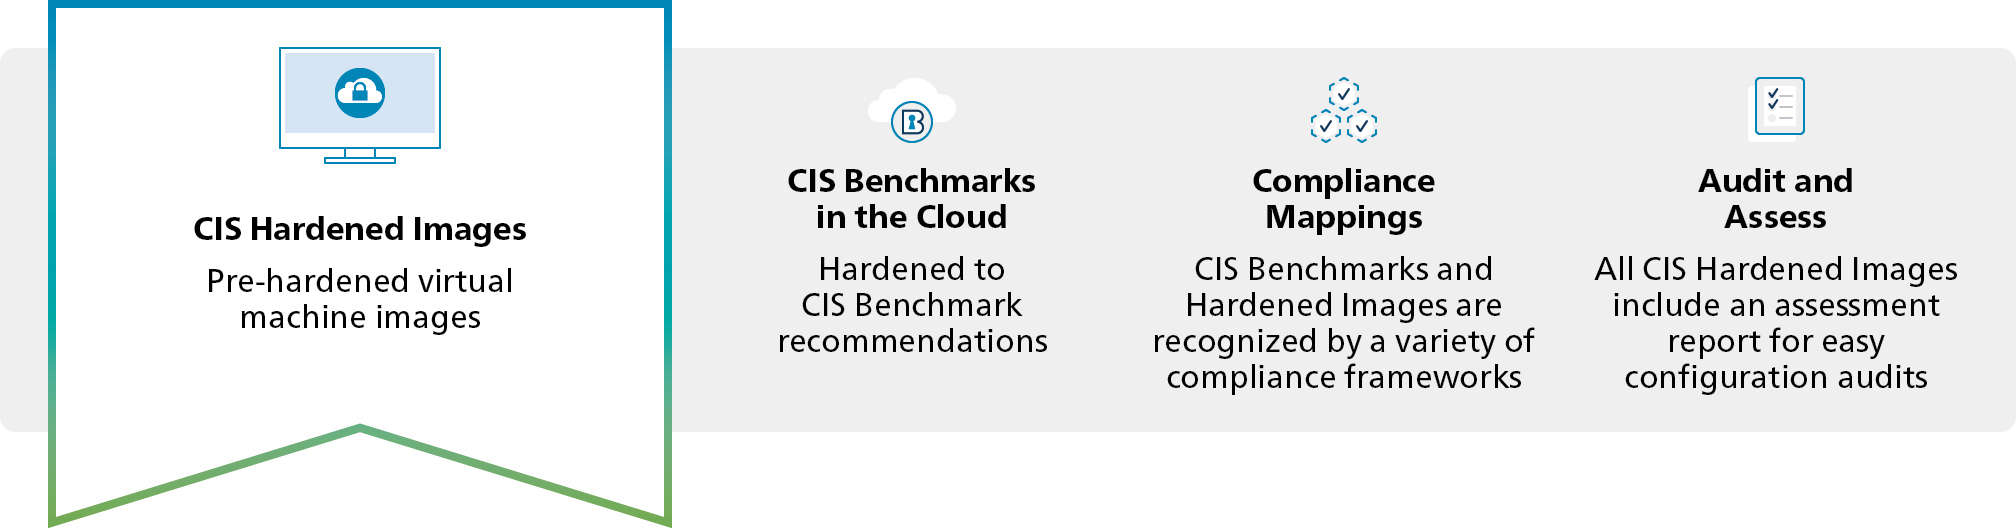 CIS-Hardened_Images-Products_and_Services.png